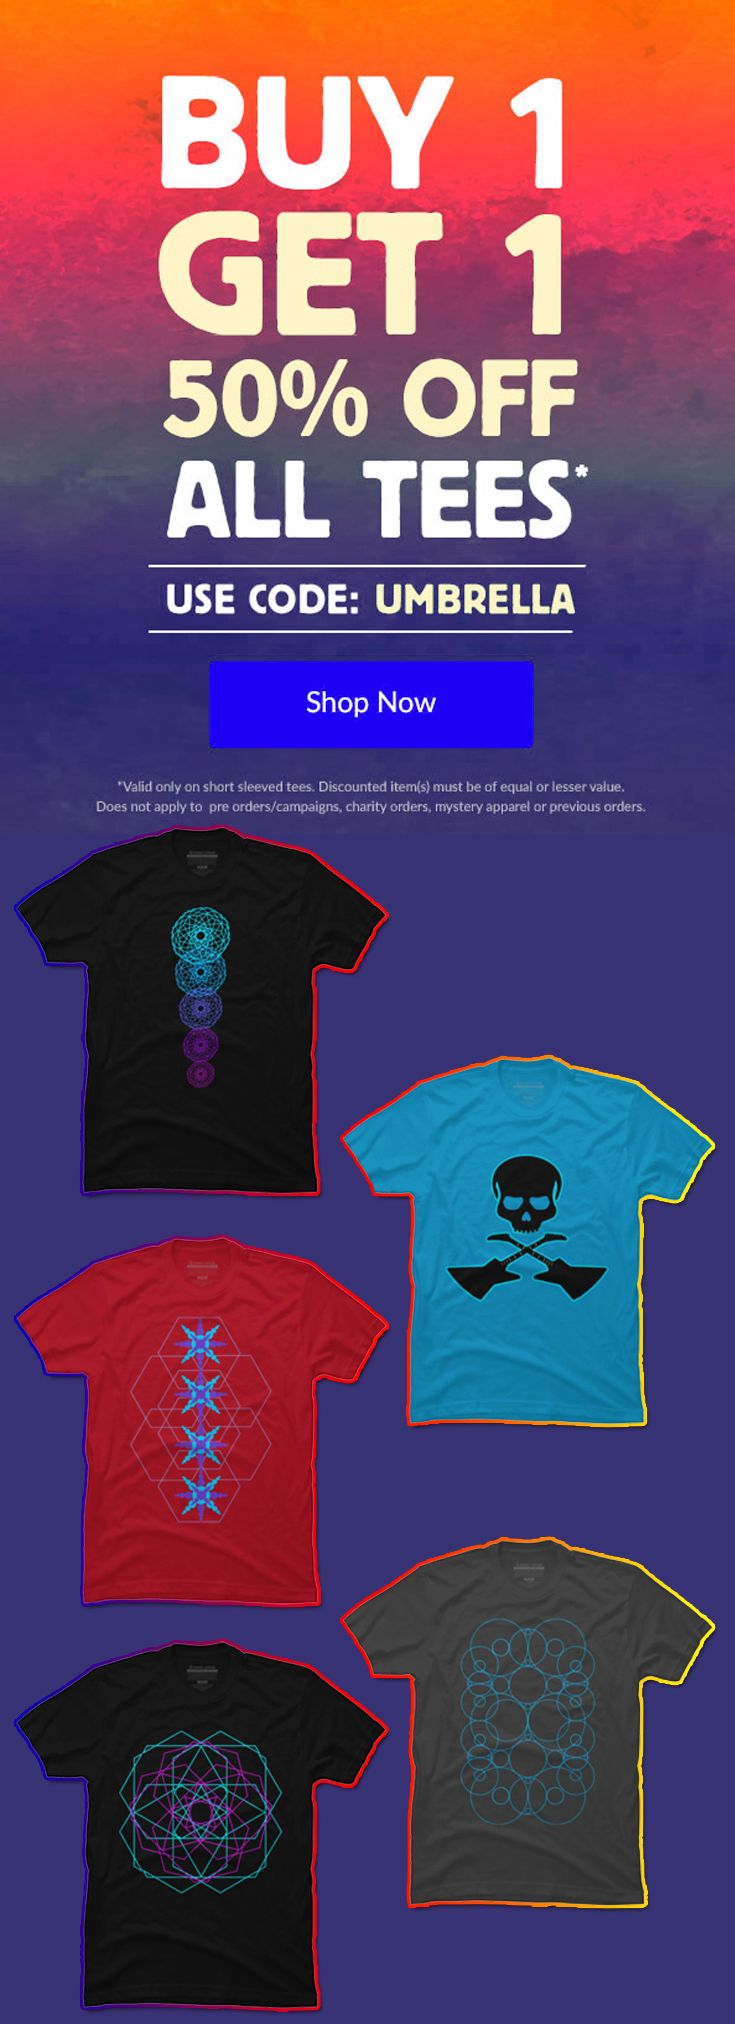 Buy 1 Get 1 50% OFF ALL T-Shirts by Scar Design. Just use code : UMBRELLA. #discount #sales #save #tshirts #fashion #style #family #art #shopping #online #desigbyhumans #skull #giftsforhim #giftsforher #onlineshopping #geometric #lgbt #music #1960 #modern #neon #skull #skulltshirt #rock #pop #designbyhumans #giftsforhim #giftsforher